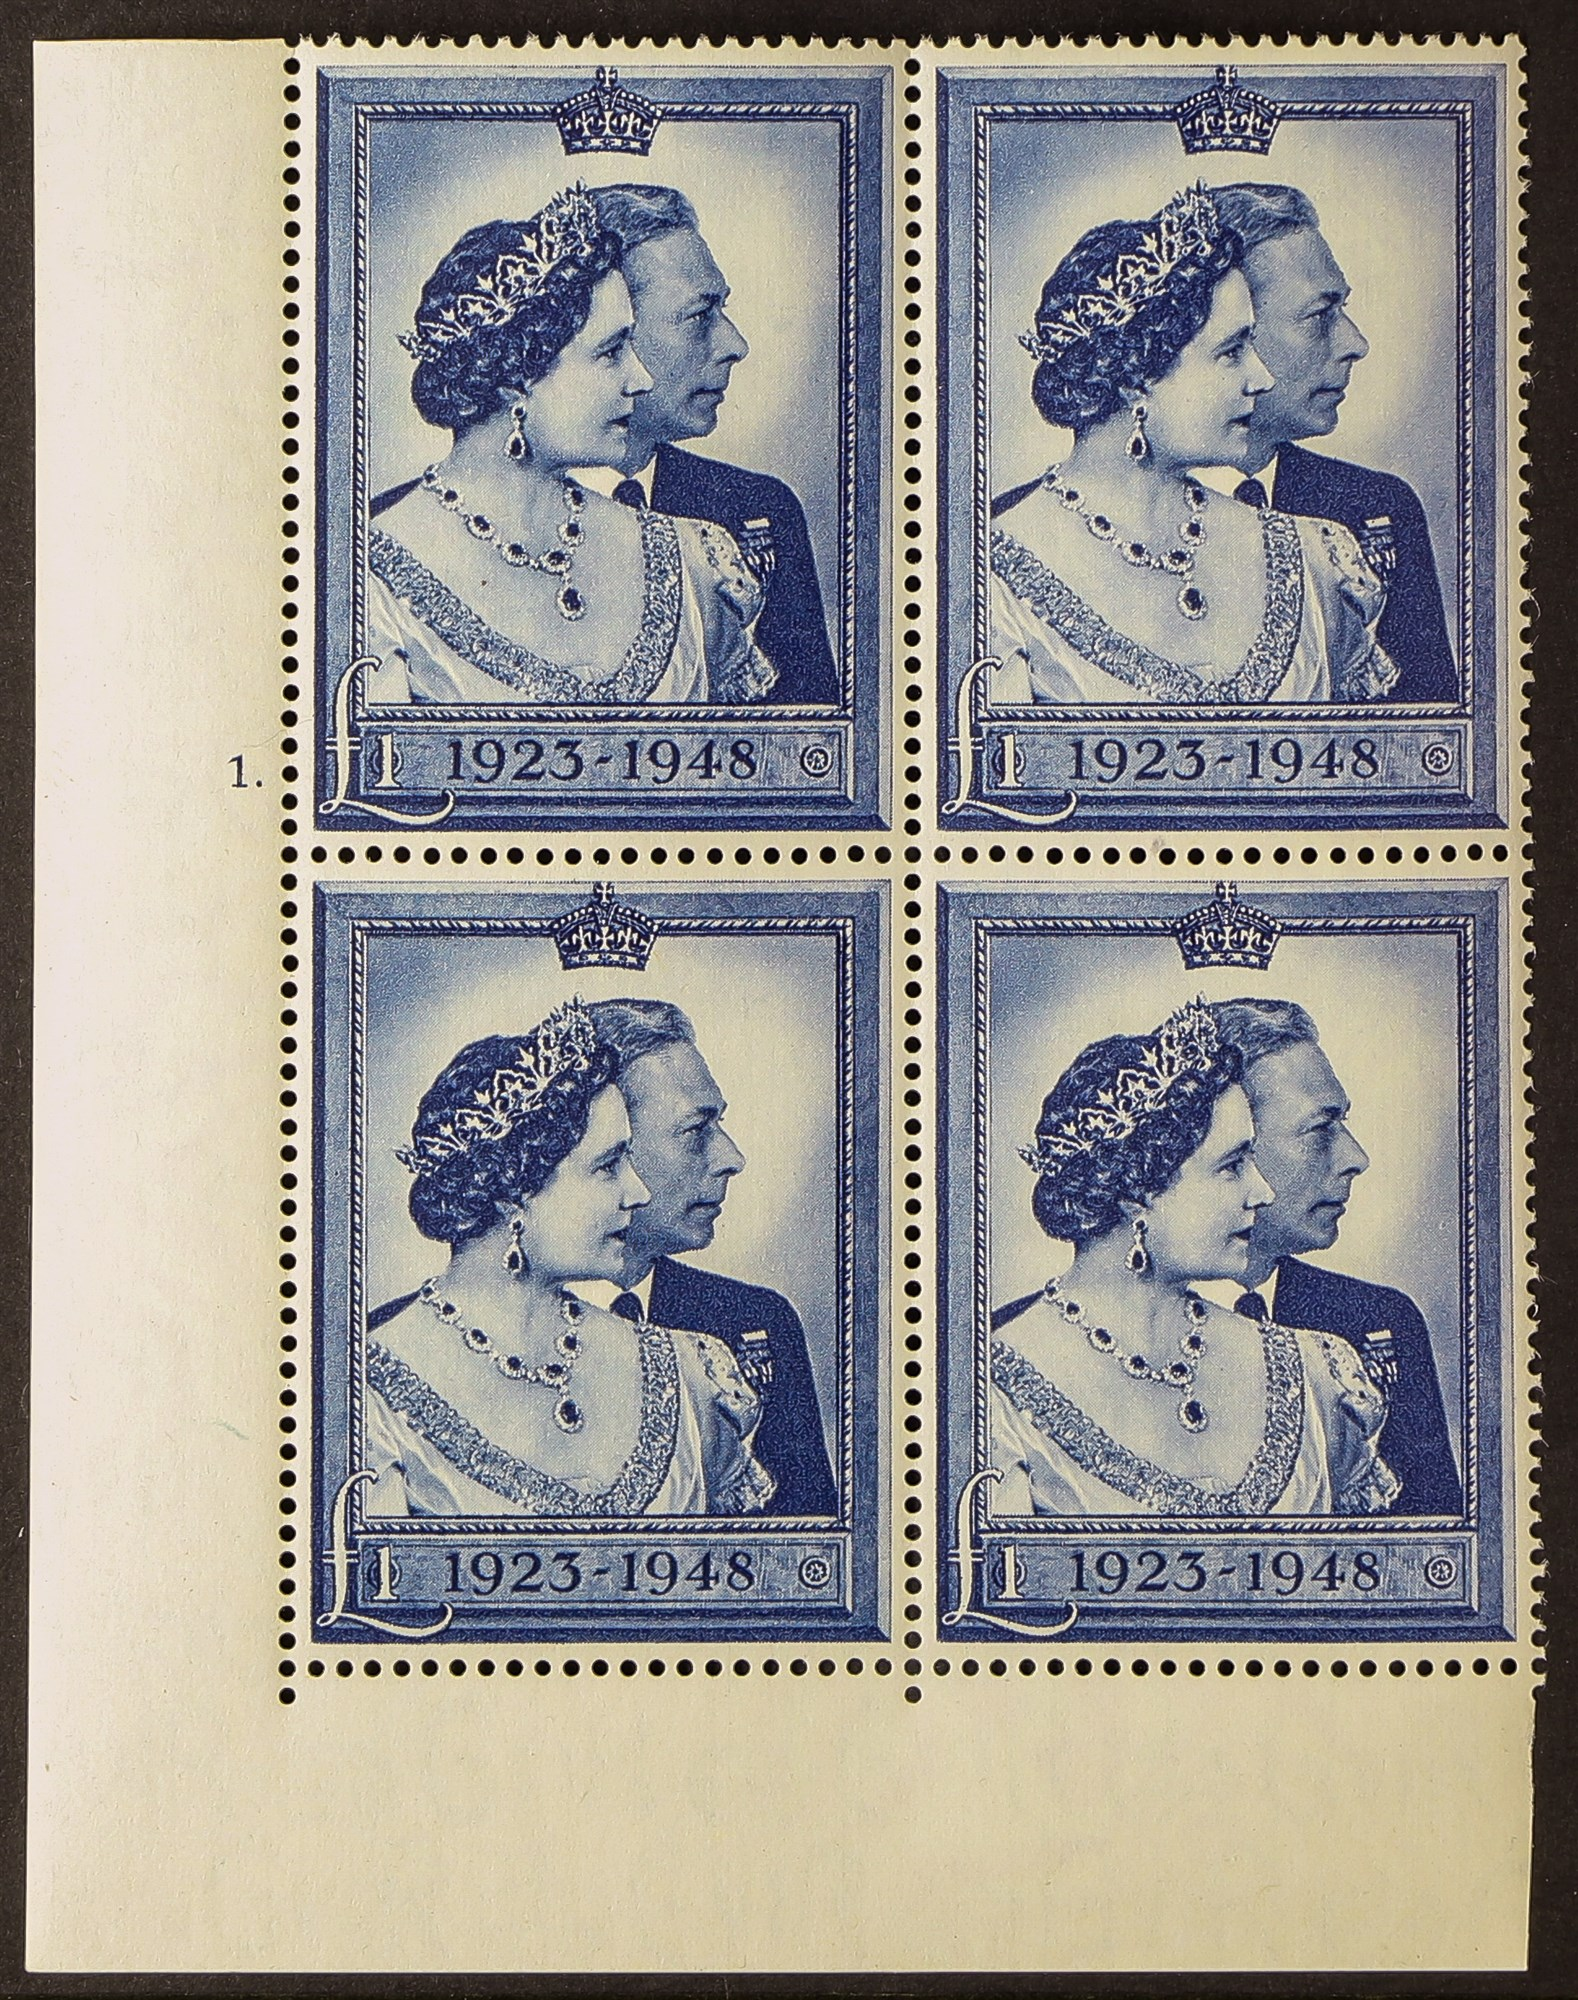 GB.GEORGE VI 1948 Silver Wedding £1, cylinder 1. block of four, never hinged mint. Cat £200.